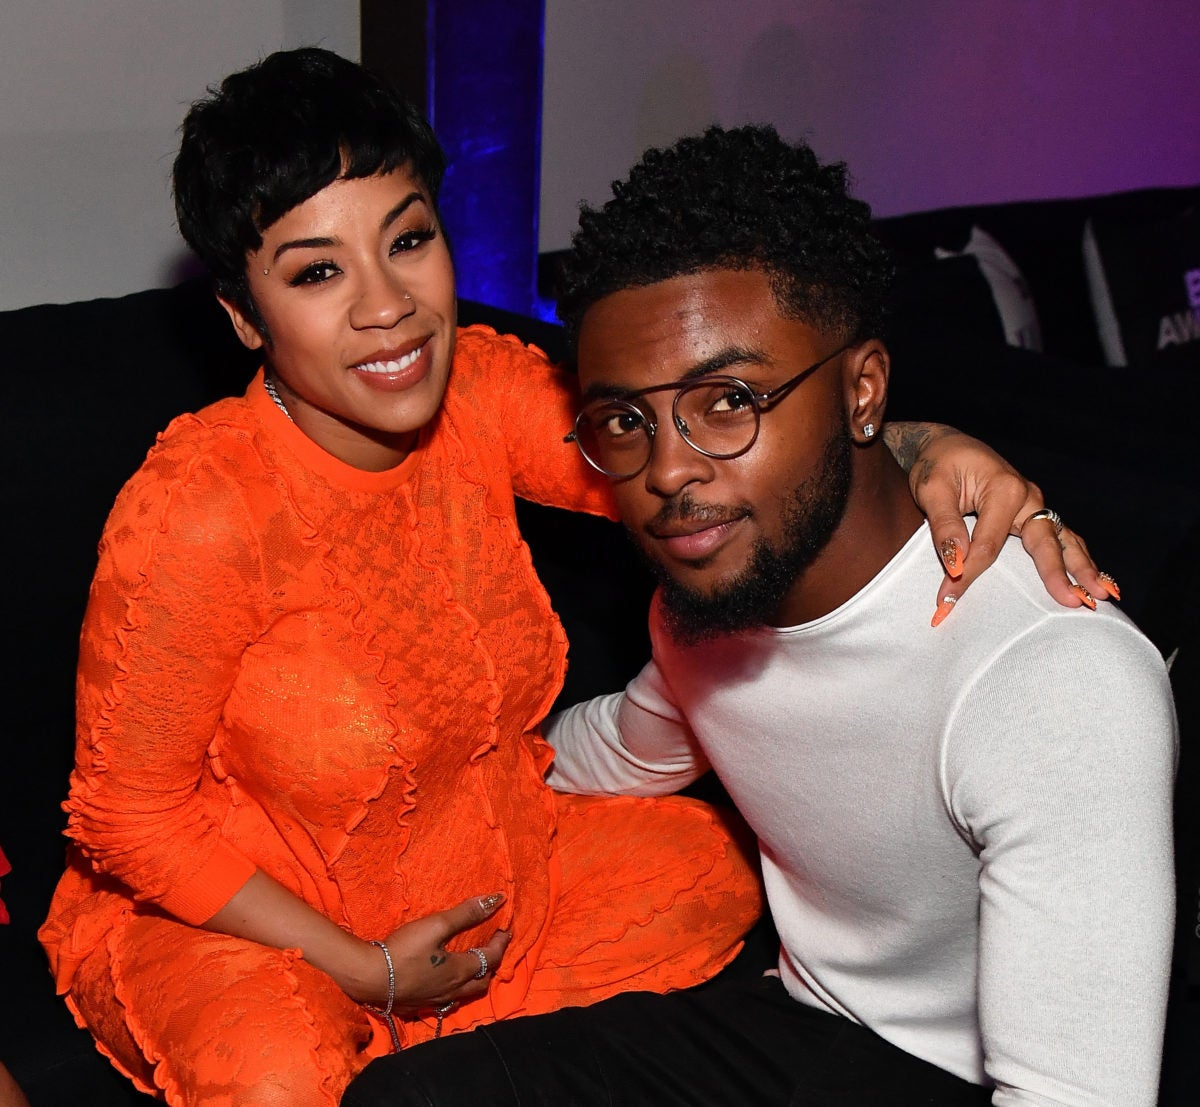 Soullow keyshia cole show on bet how to convert real money to bitcoins news